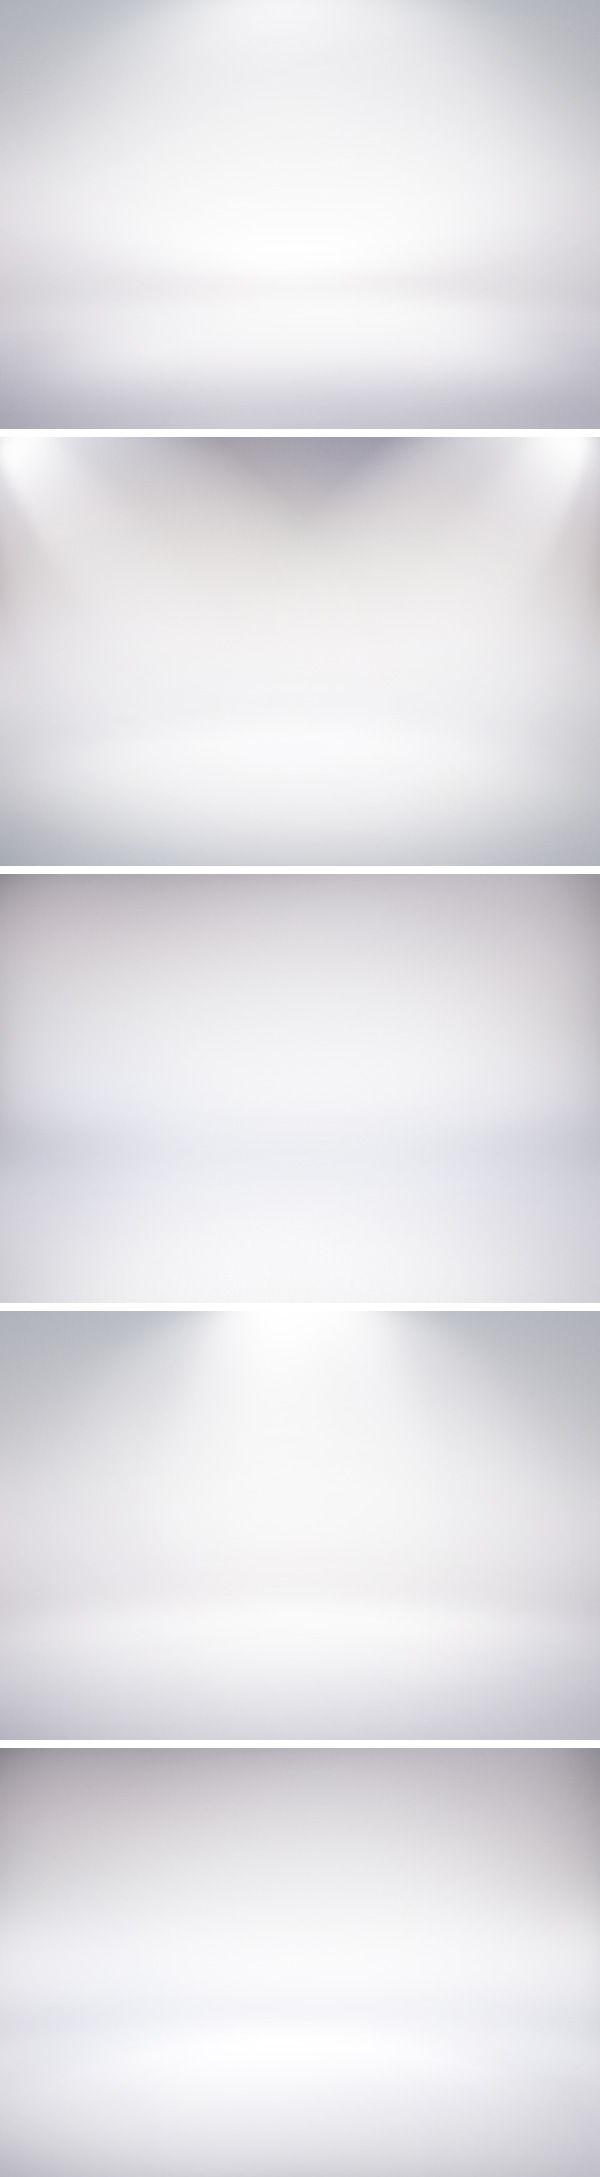 5 infinite white studio backdrops